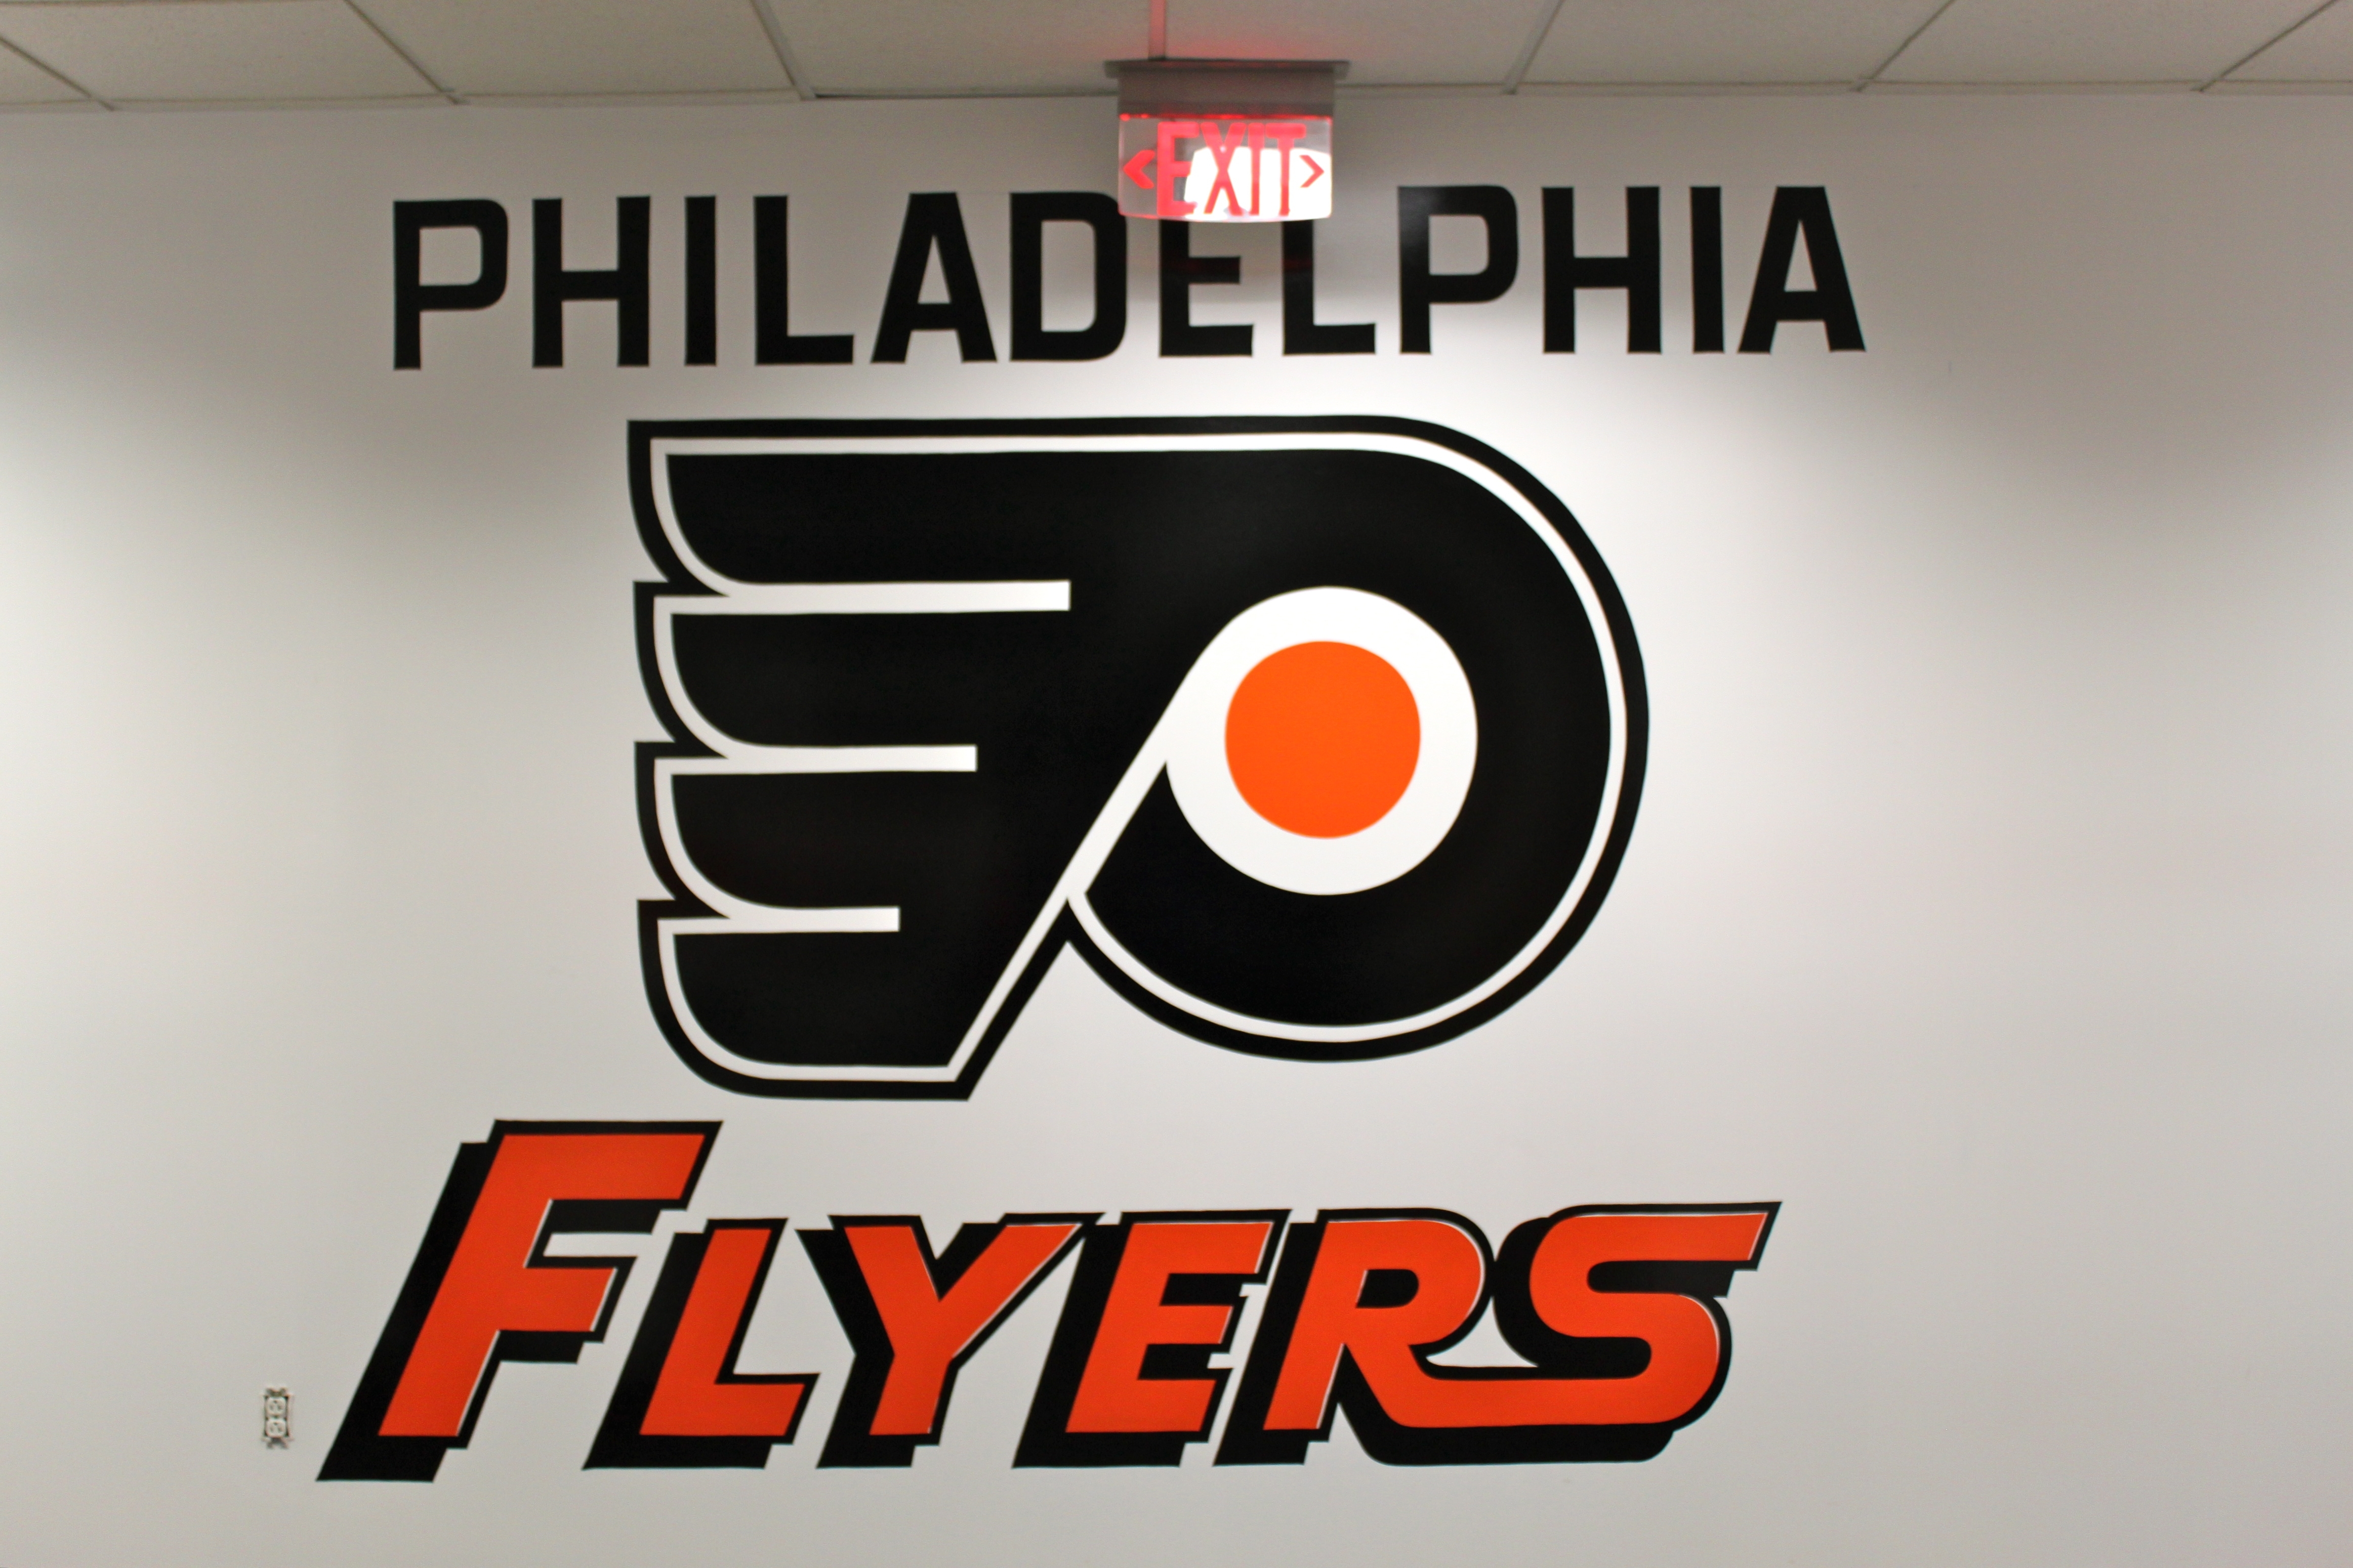 Philadelphia Flyers' Locker Rooms Are Refreshed with New ...